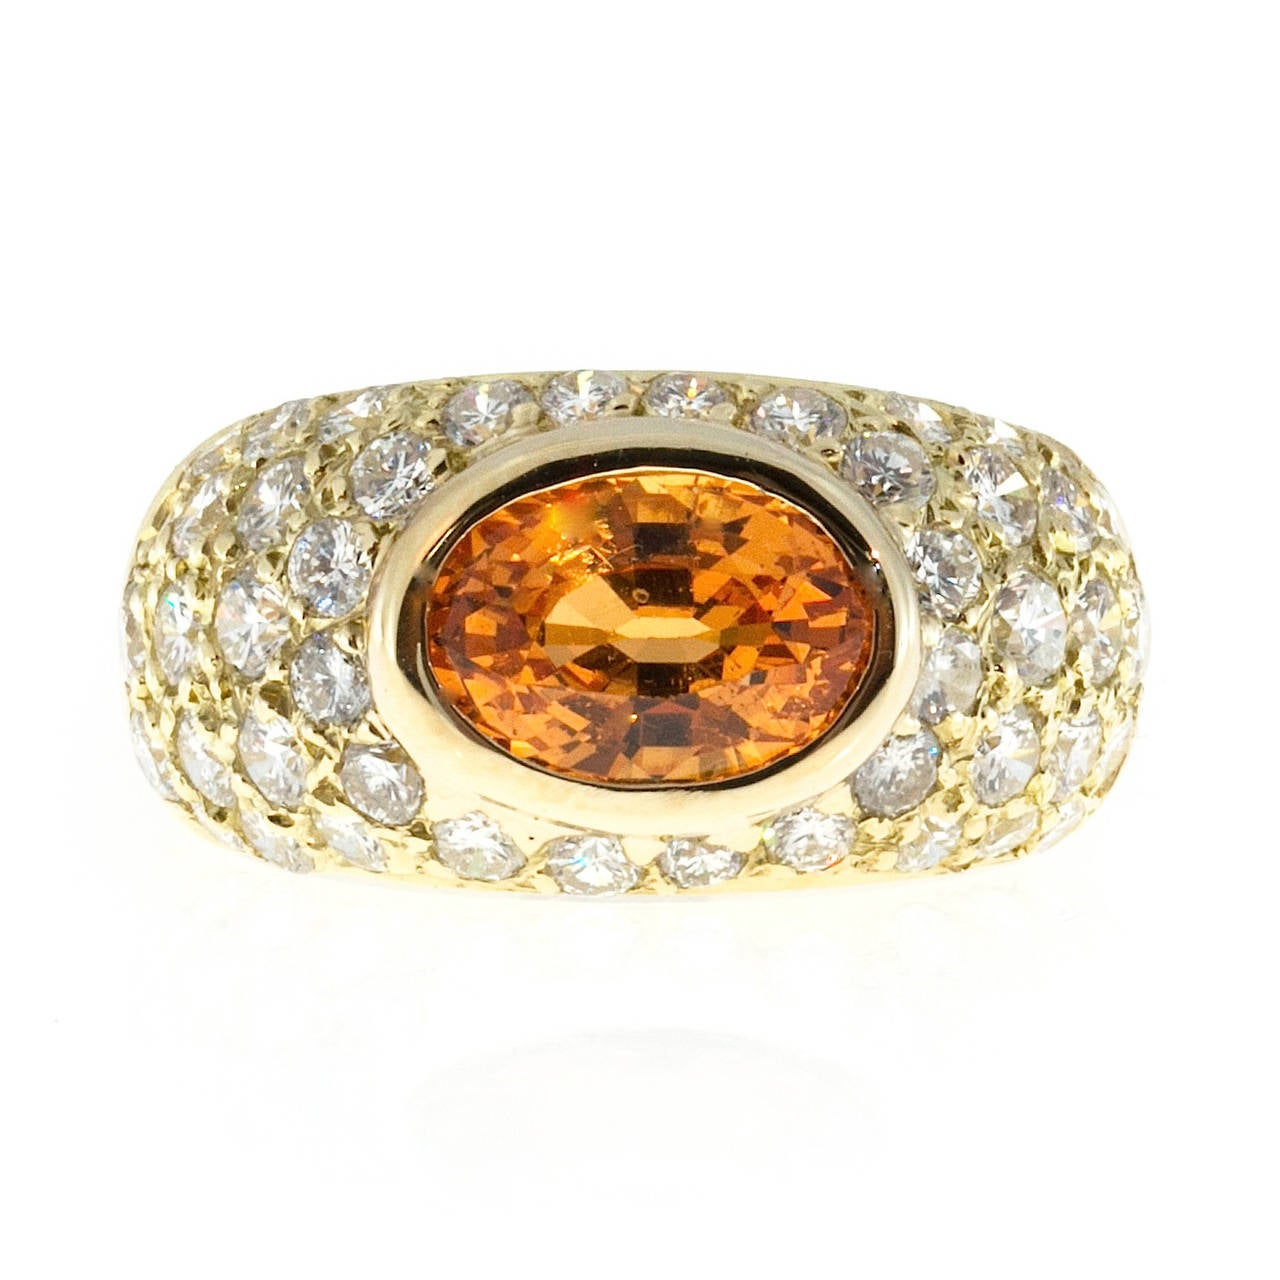 Extra bright and sparkly genuine Spessartite Garnet set sideways in a handmade 1960-1970 dome ring pave set with fine Ideal colorless diamonds. The stone looks bottomless as you stare into it.